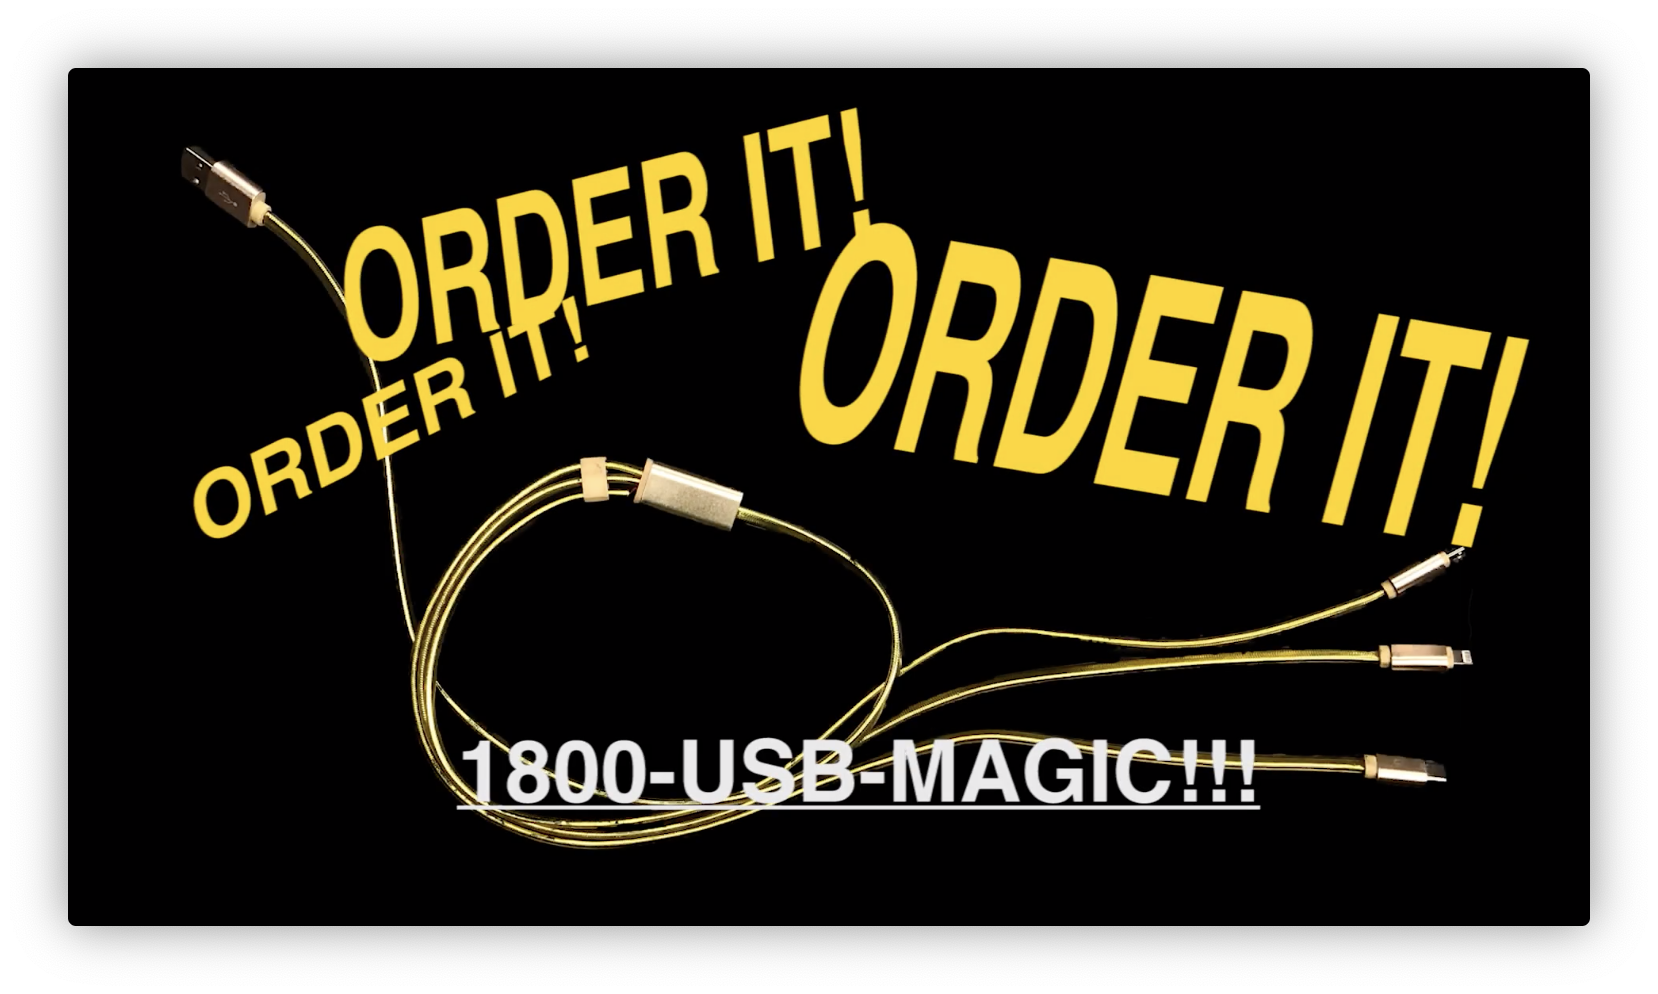 Magical USB Order Screen